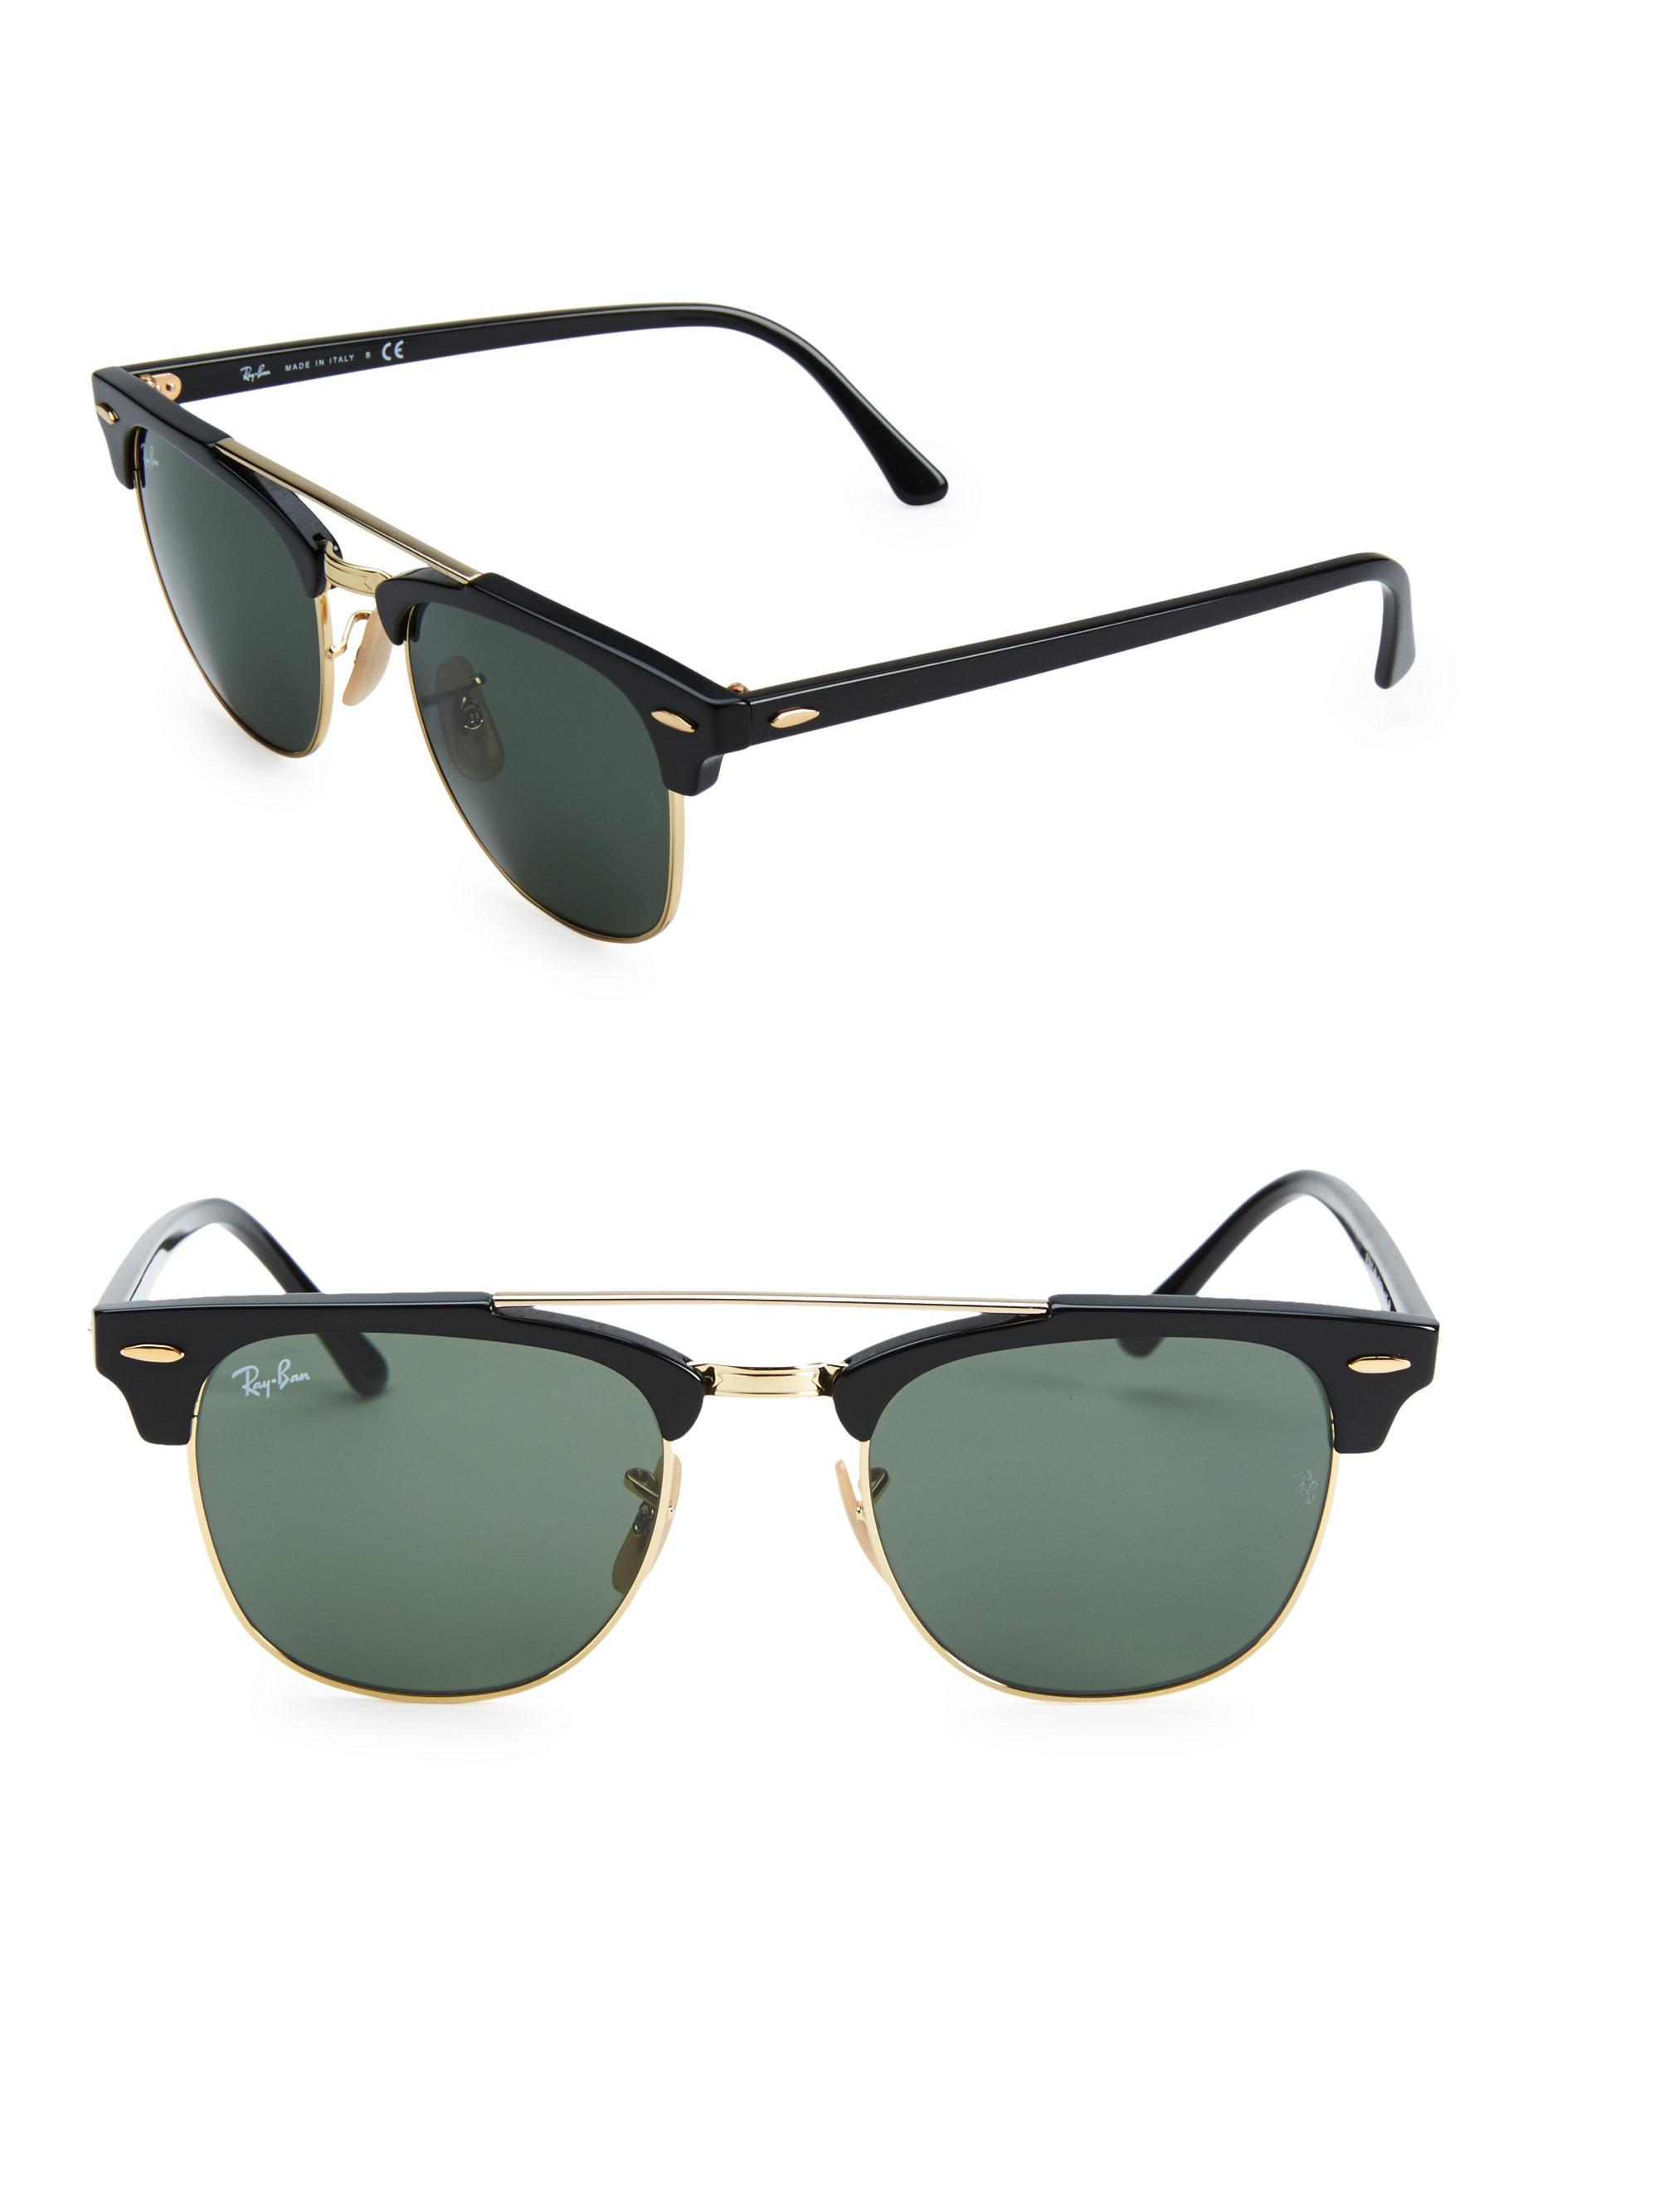 030537f10d Gallery. Previously sold at: Saks Fifth Avenue · Men's Ray Ban Clubmaster